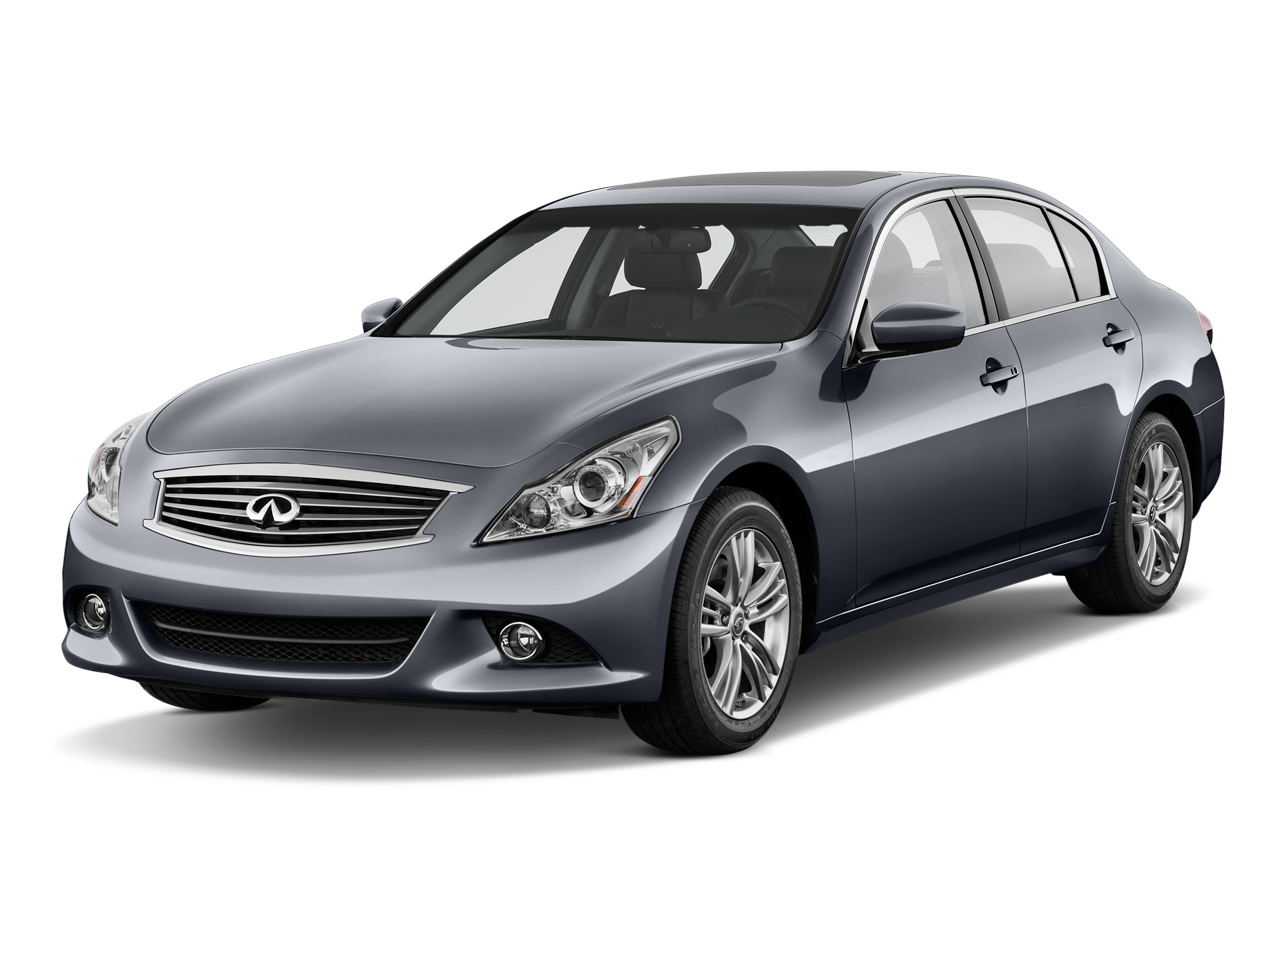 2012 Infiniti G37 Sedan Review Ratings Specs Prices